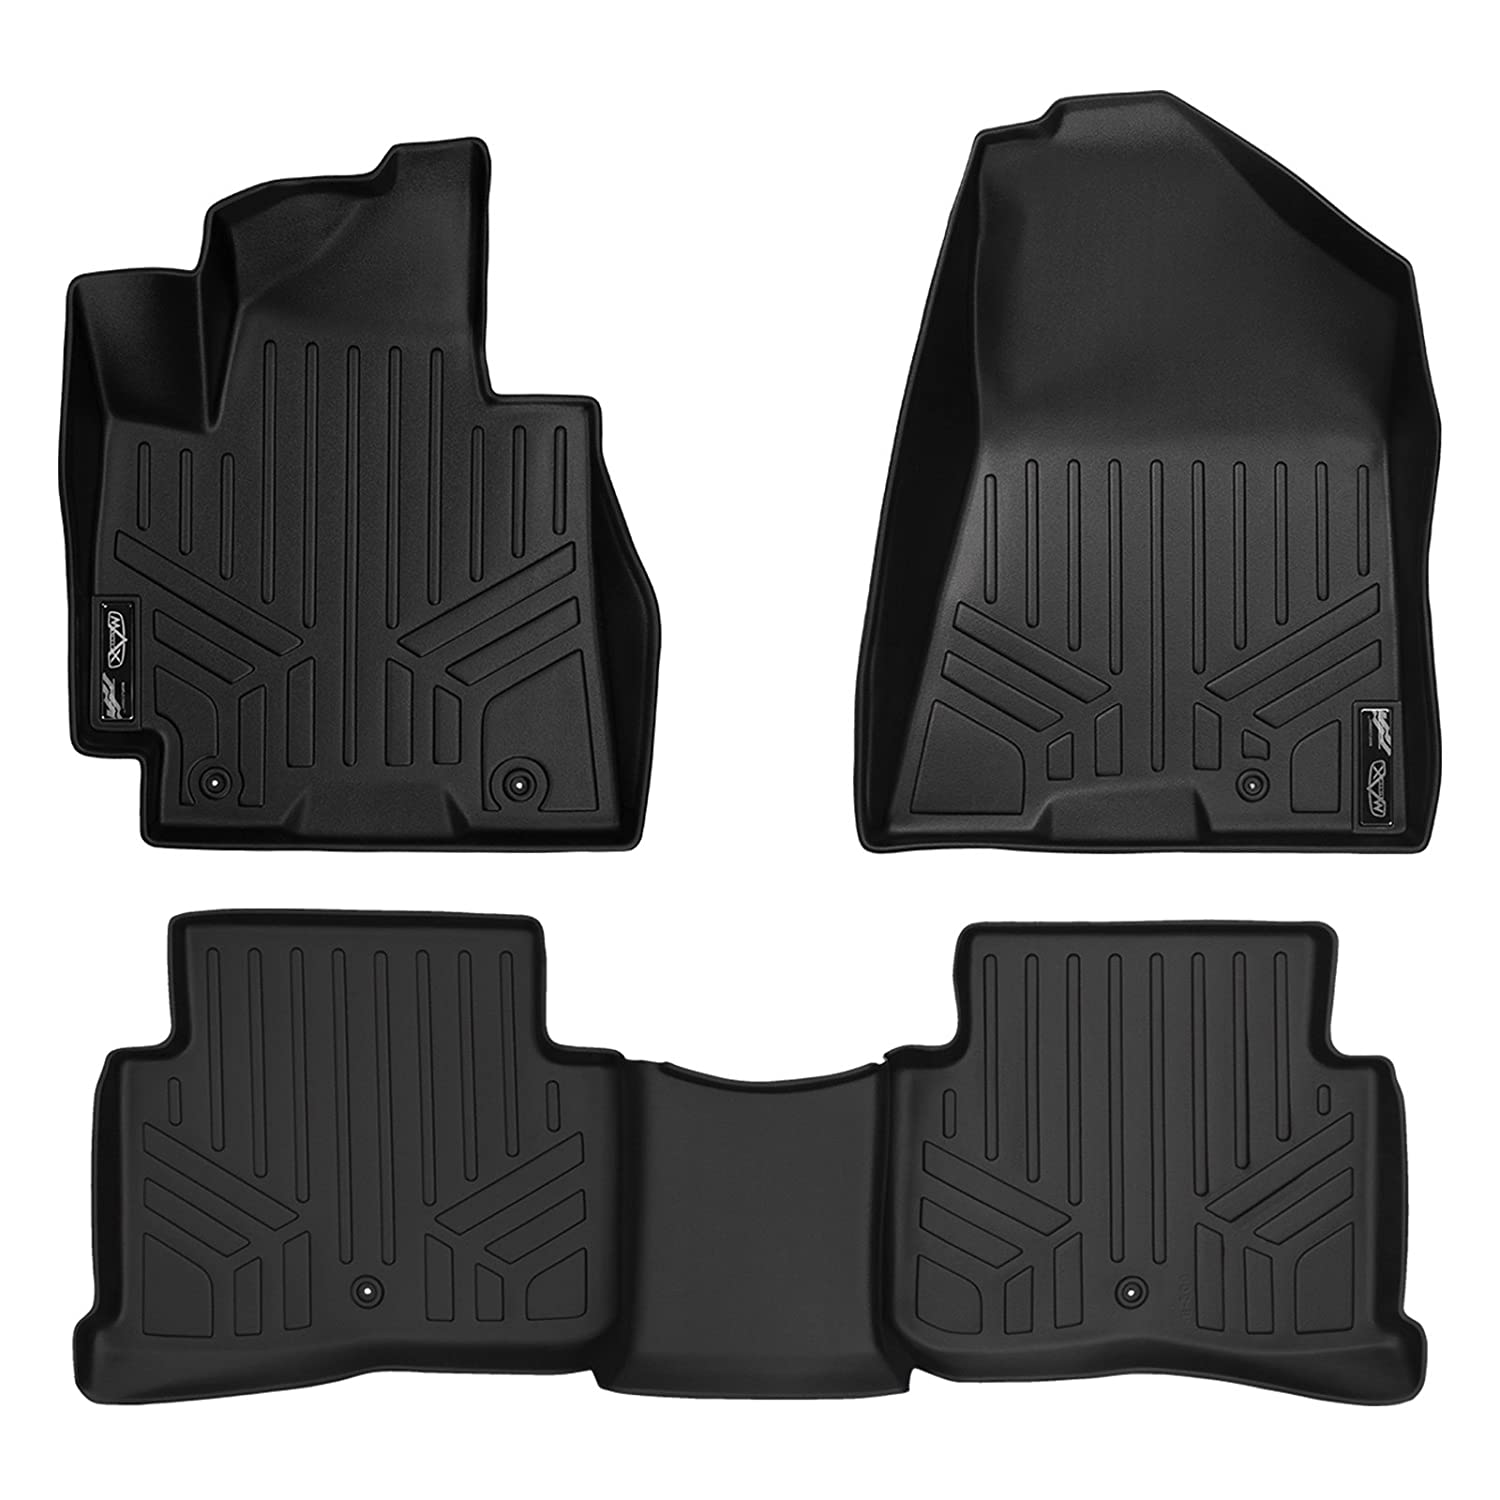 liner black escape maxfloormat automotive cargo and dp mat floor mats set for maxtray com max ford amazon rows